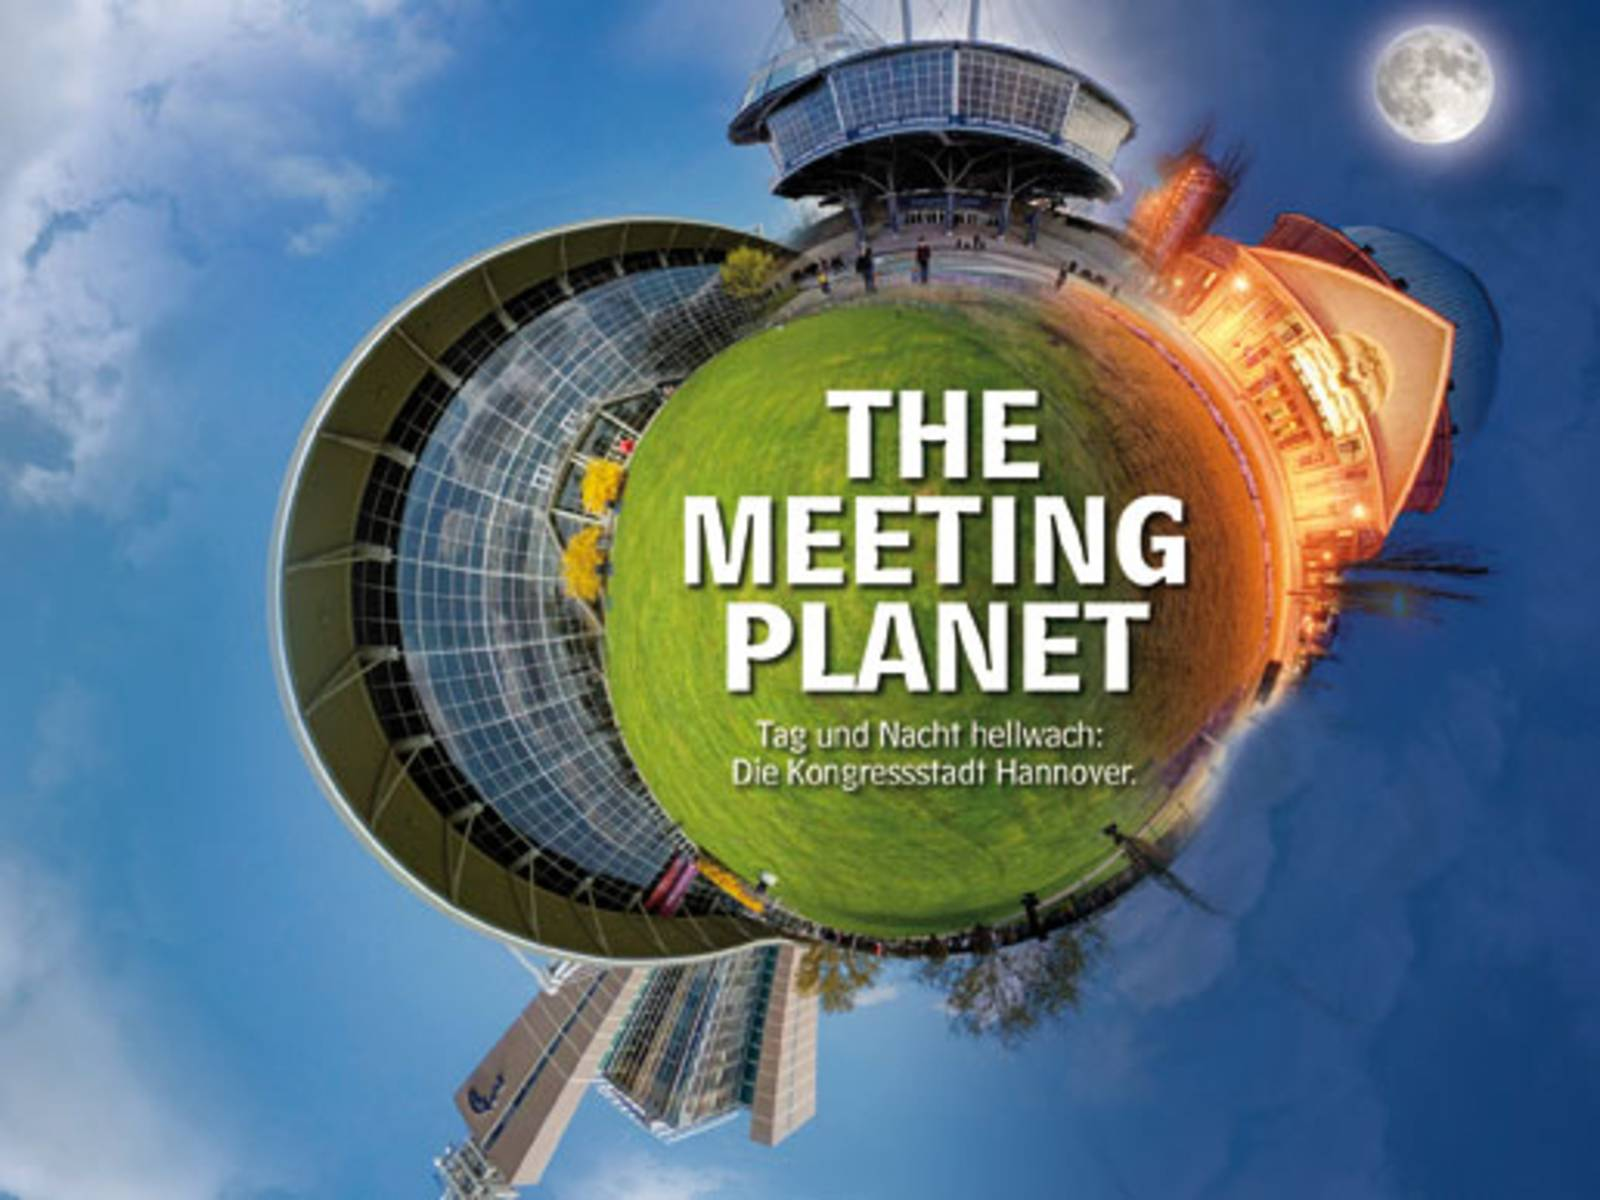 Hannover - The Meeting Planet